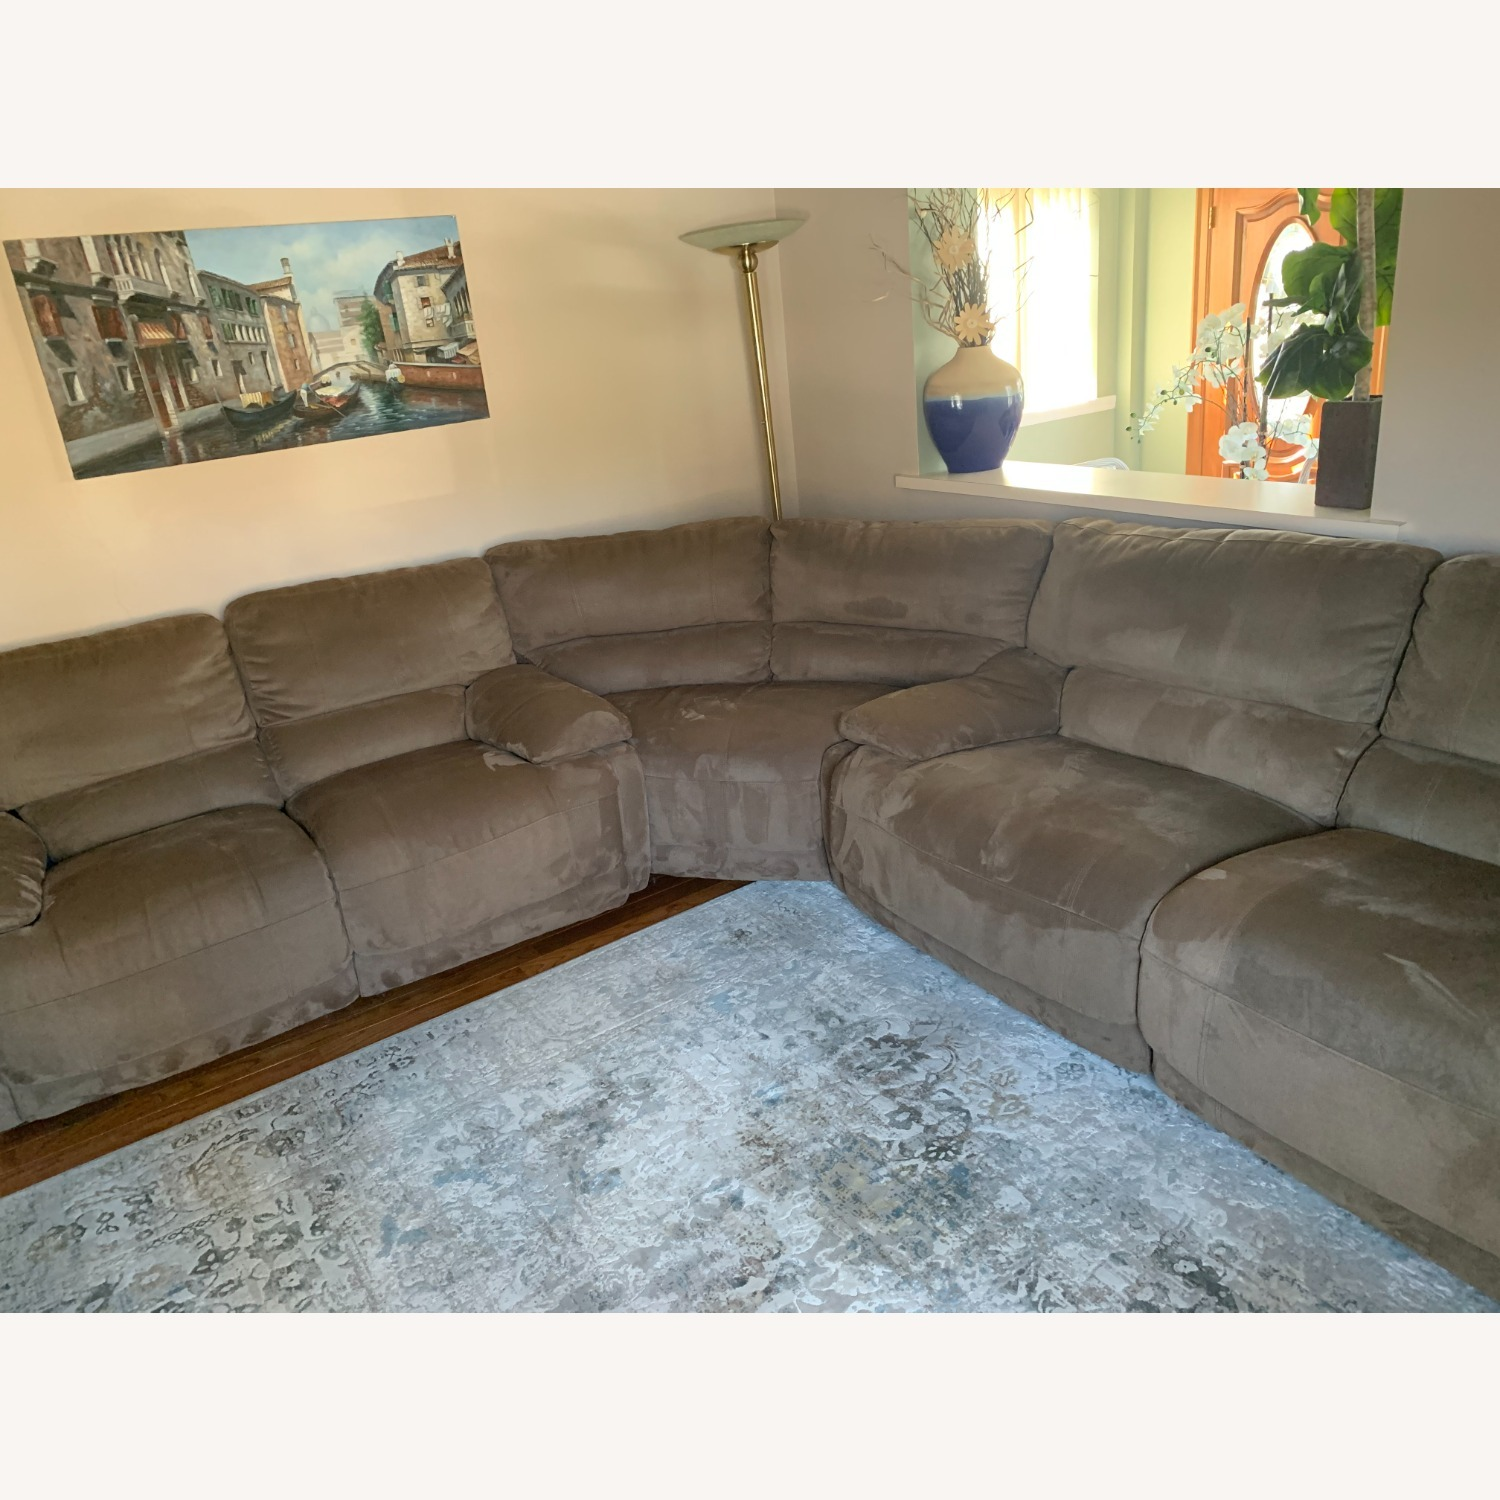 3 Piece Sectional Couch with Recliners - image-7